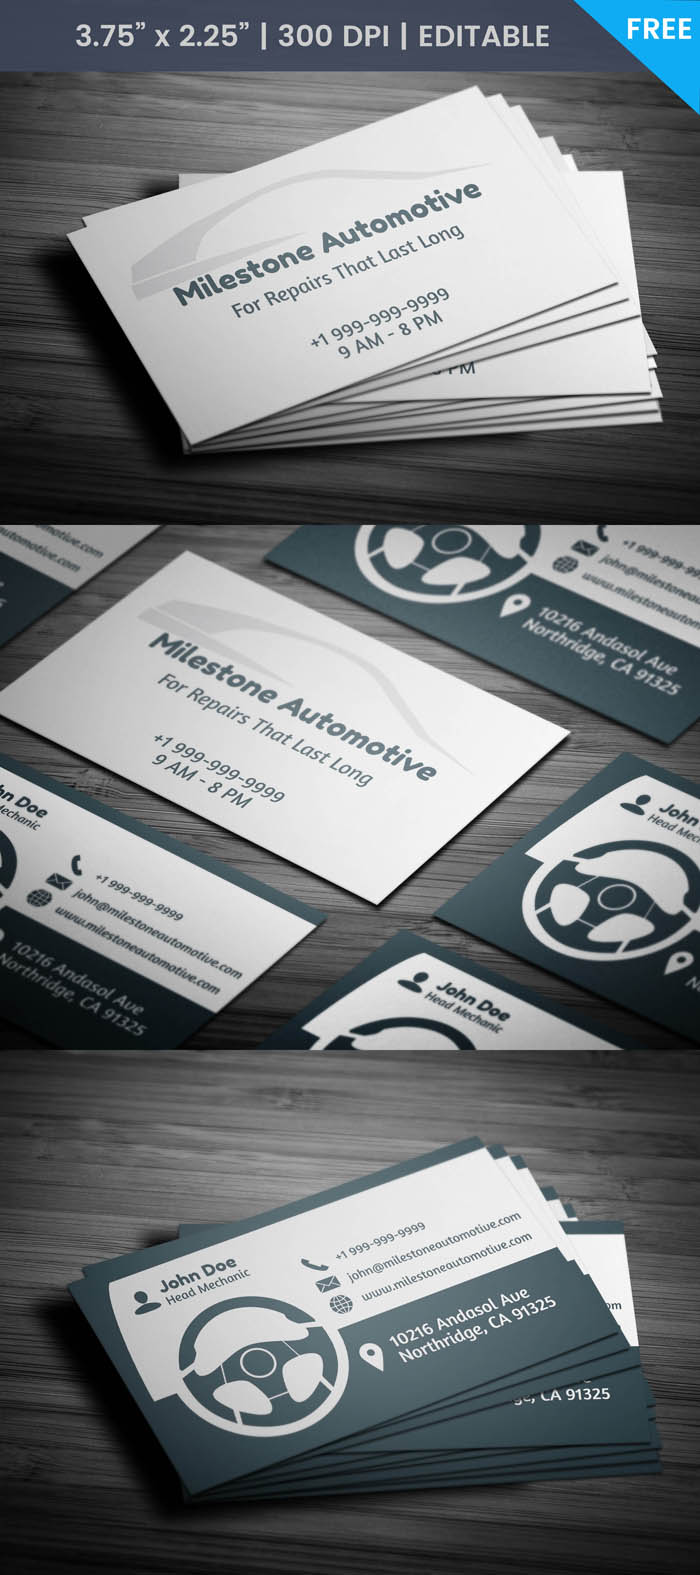 Free Auto Detailing Business Card Template